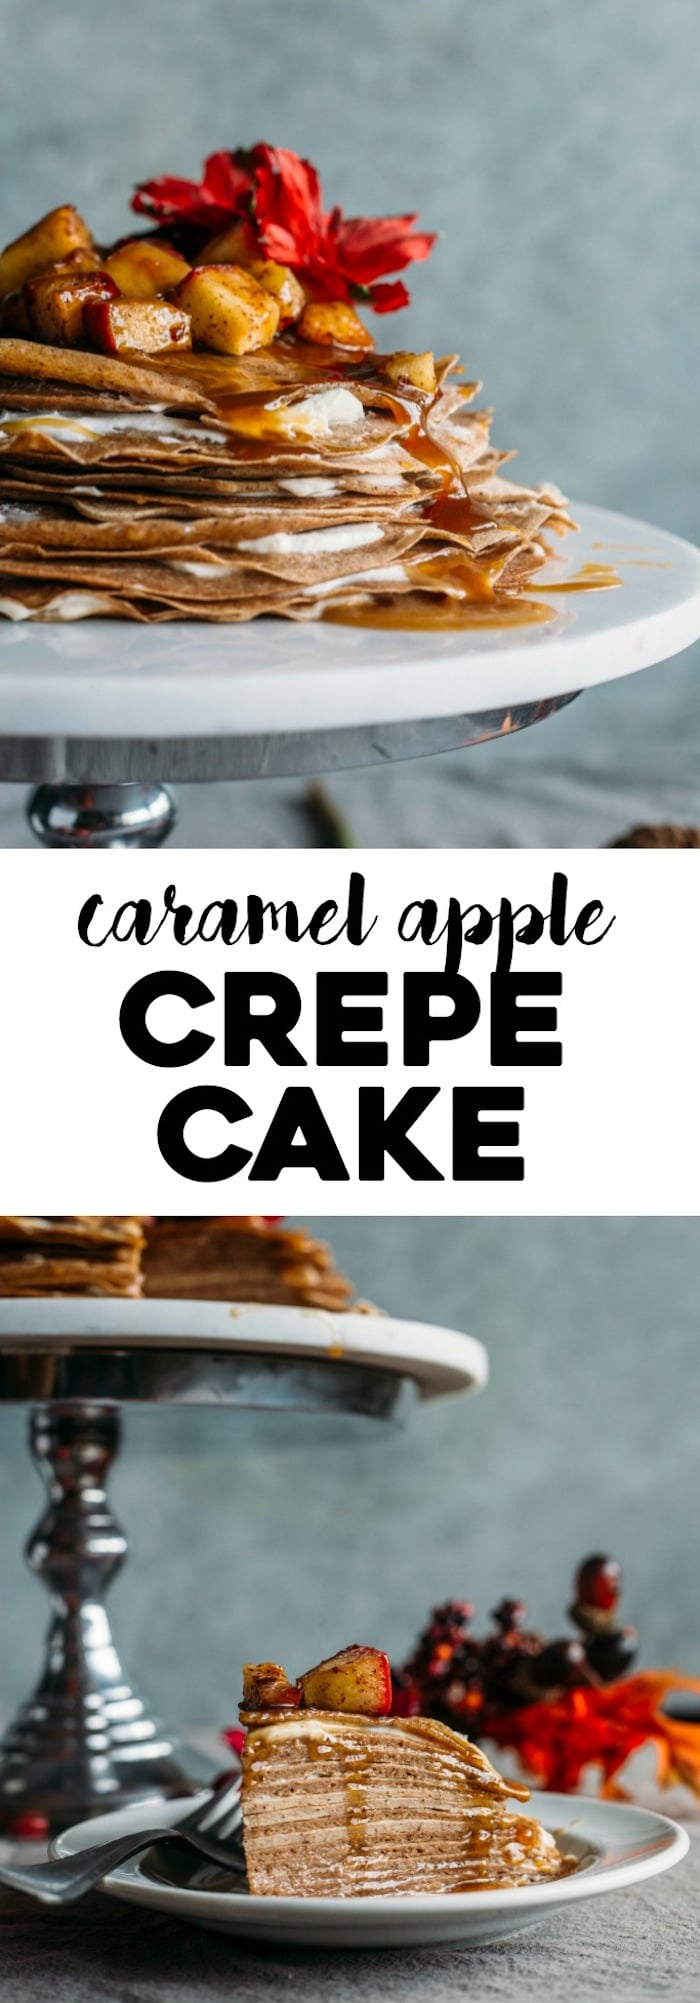 Caramel Apple Crepe Cake | Why settle for plain 'ole crepes when you could whip up this tasty yet surprisingly simple crepe cake?! Filled with mascarpone cheese and topped with caramel--yum! | thealmondeater.com